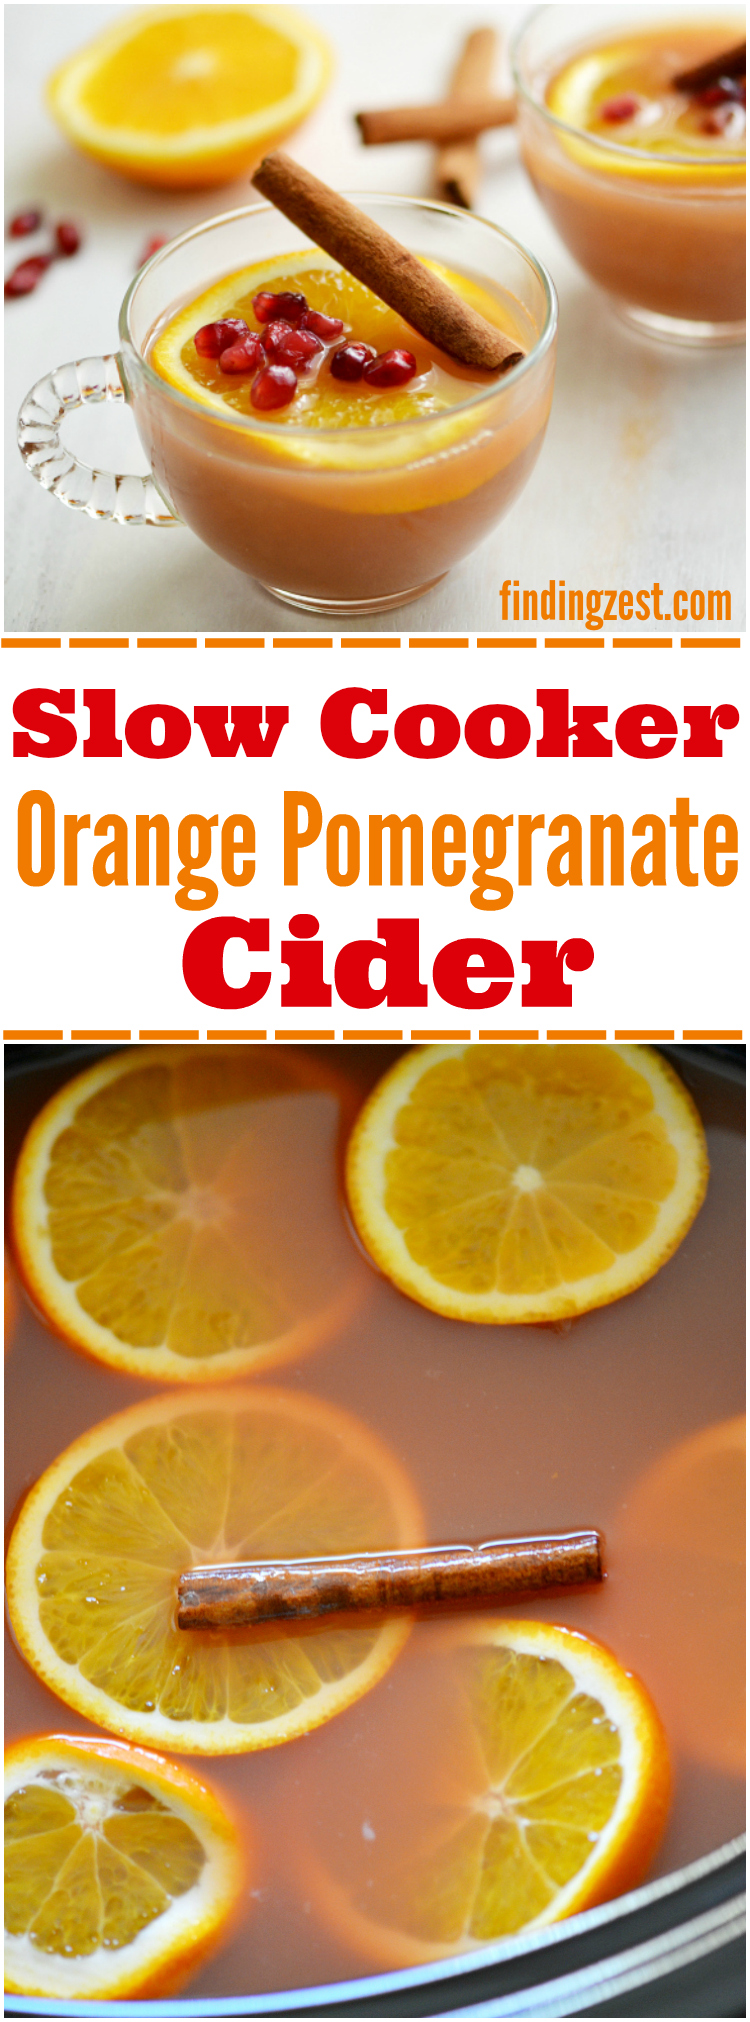 Slow Cooker Orange Pomegranate Cider: This easy apple cider recipe is ...